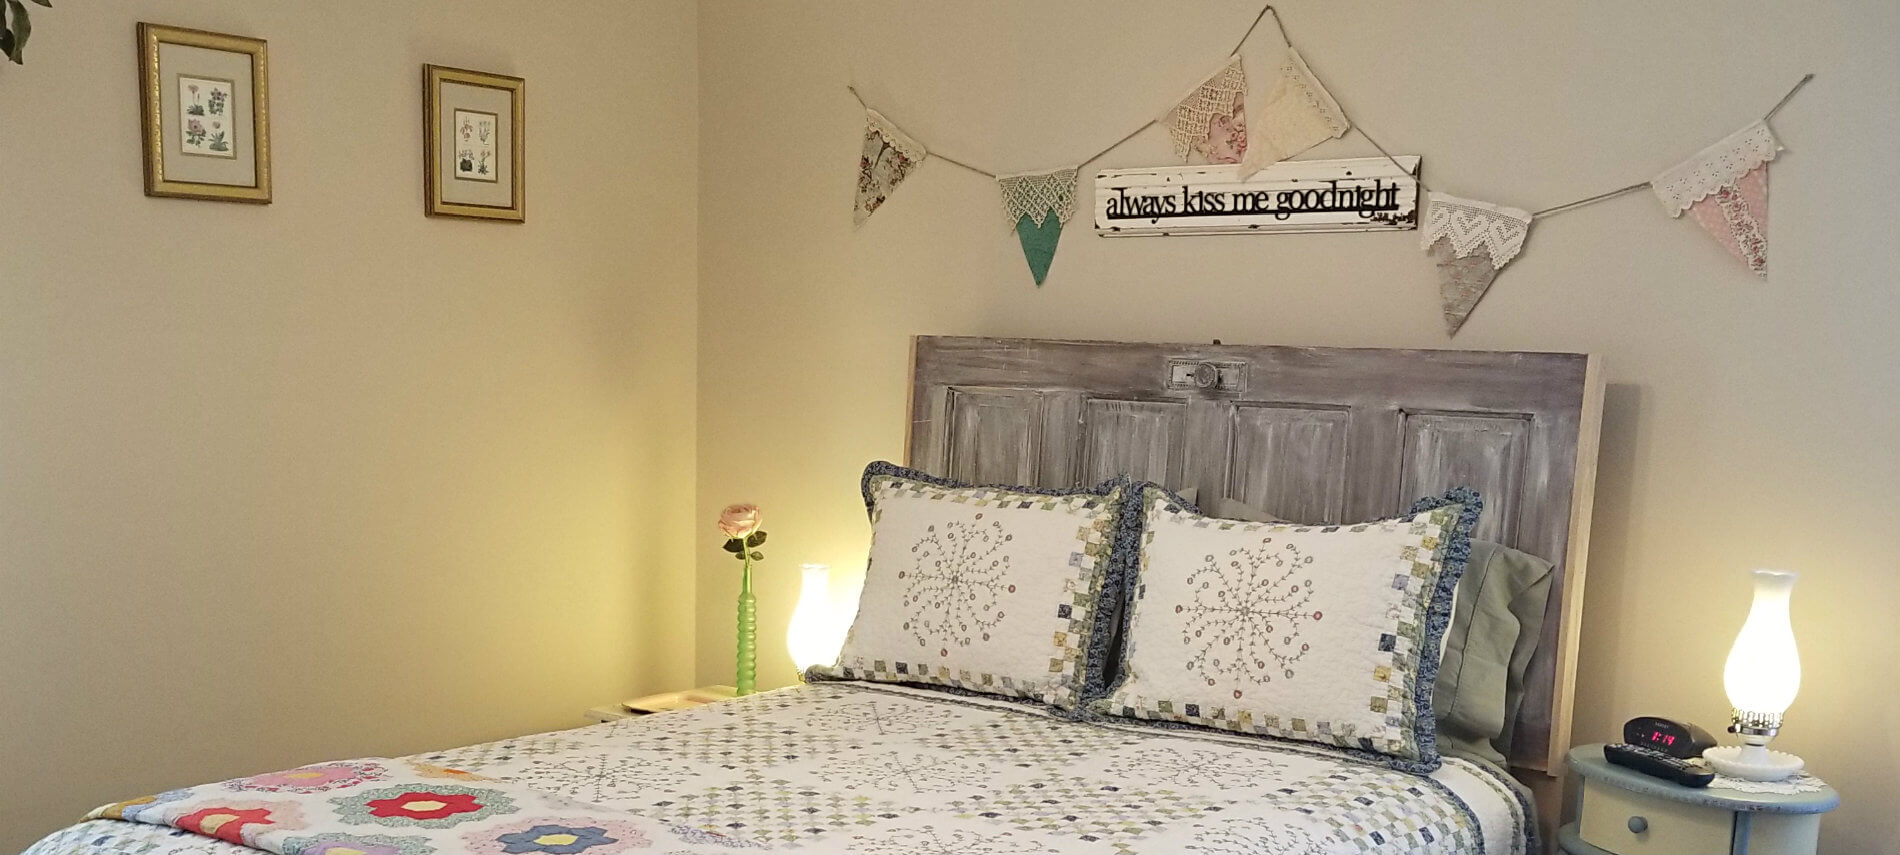 Beige room with quilt covered bed and gray antique door headboard